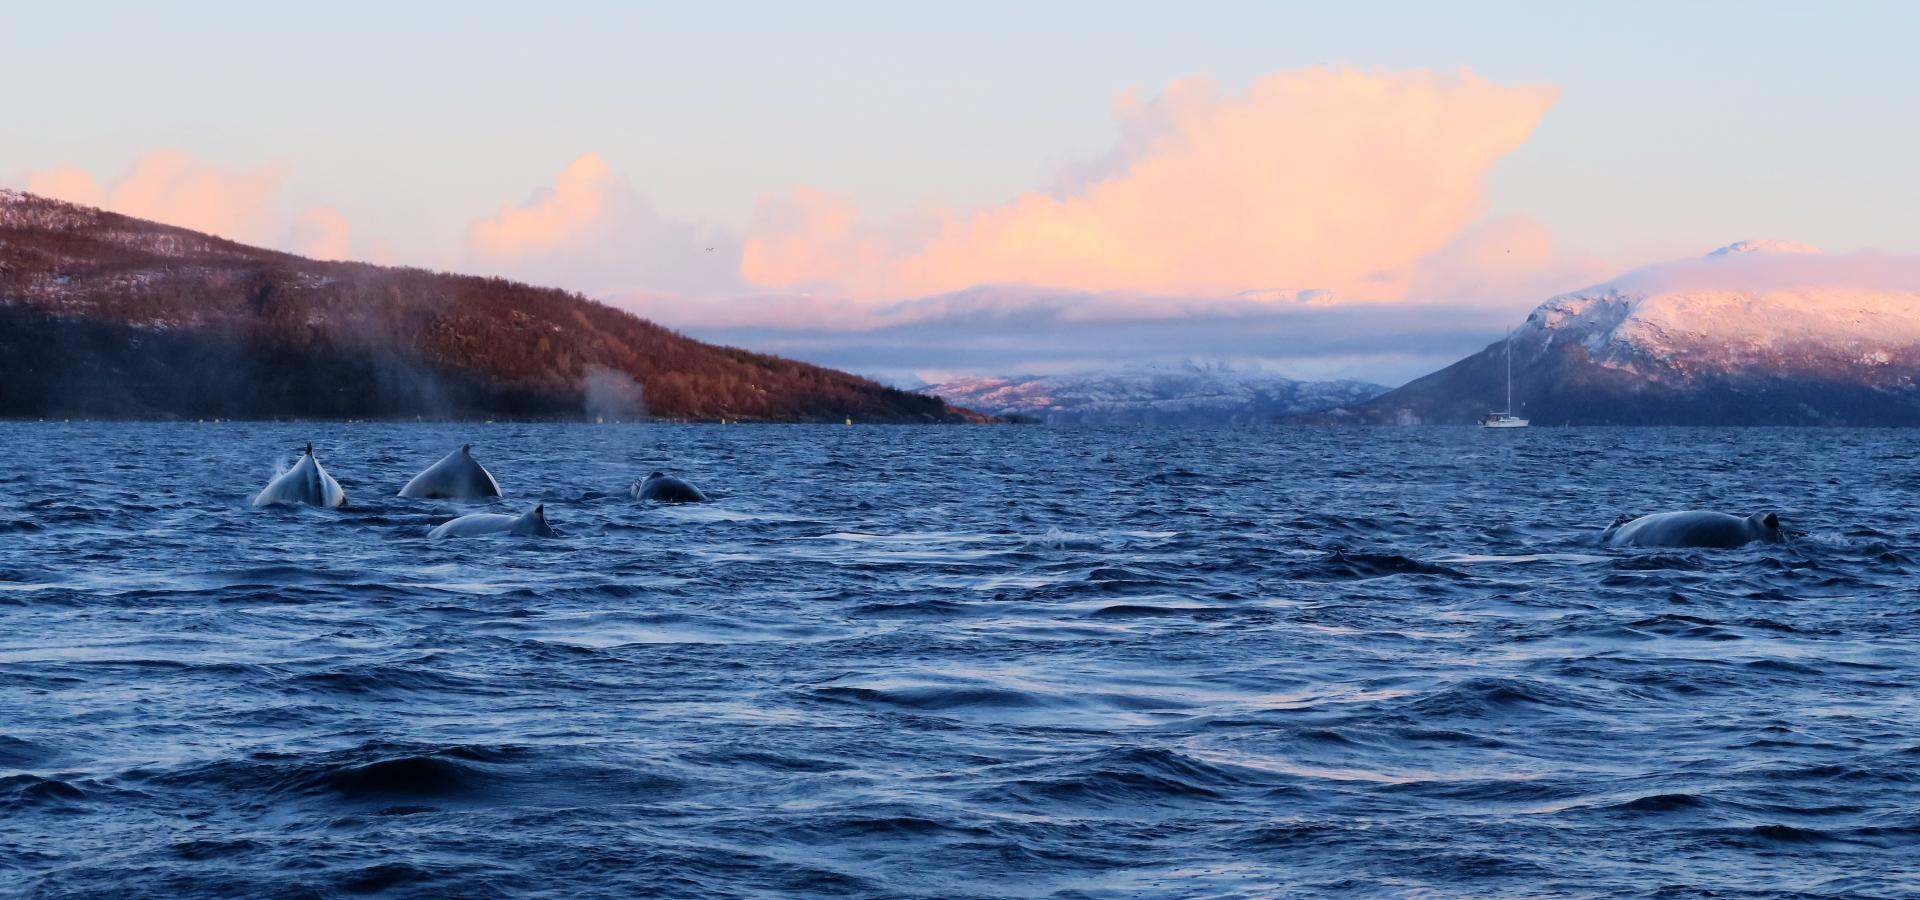 Whales in the sea outside Skjervøy, Northern Norway